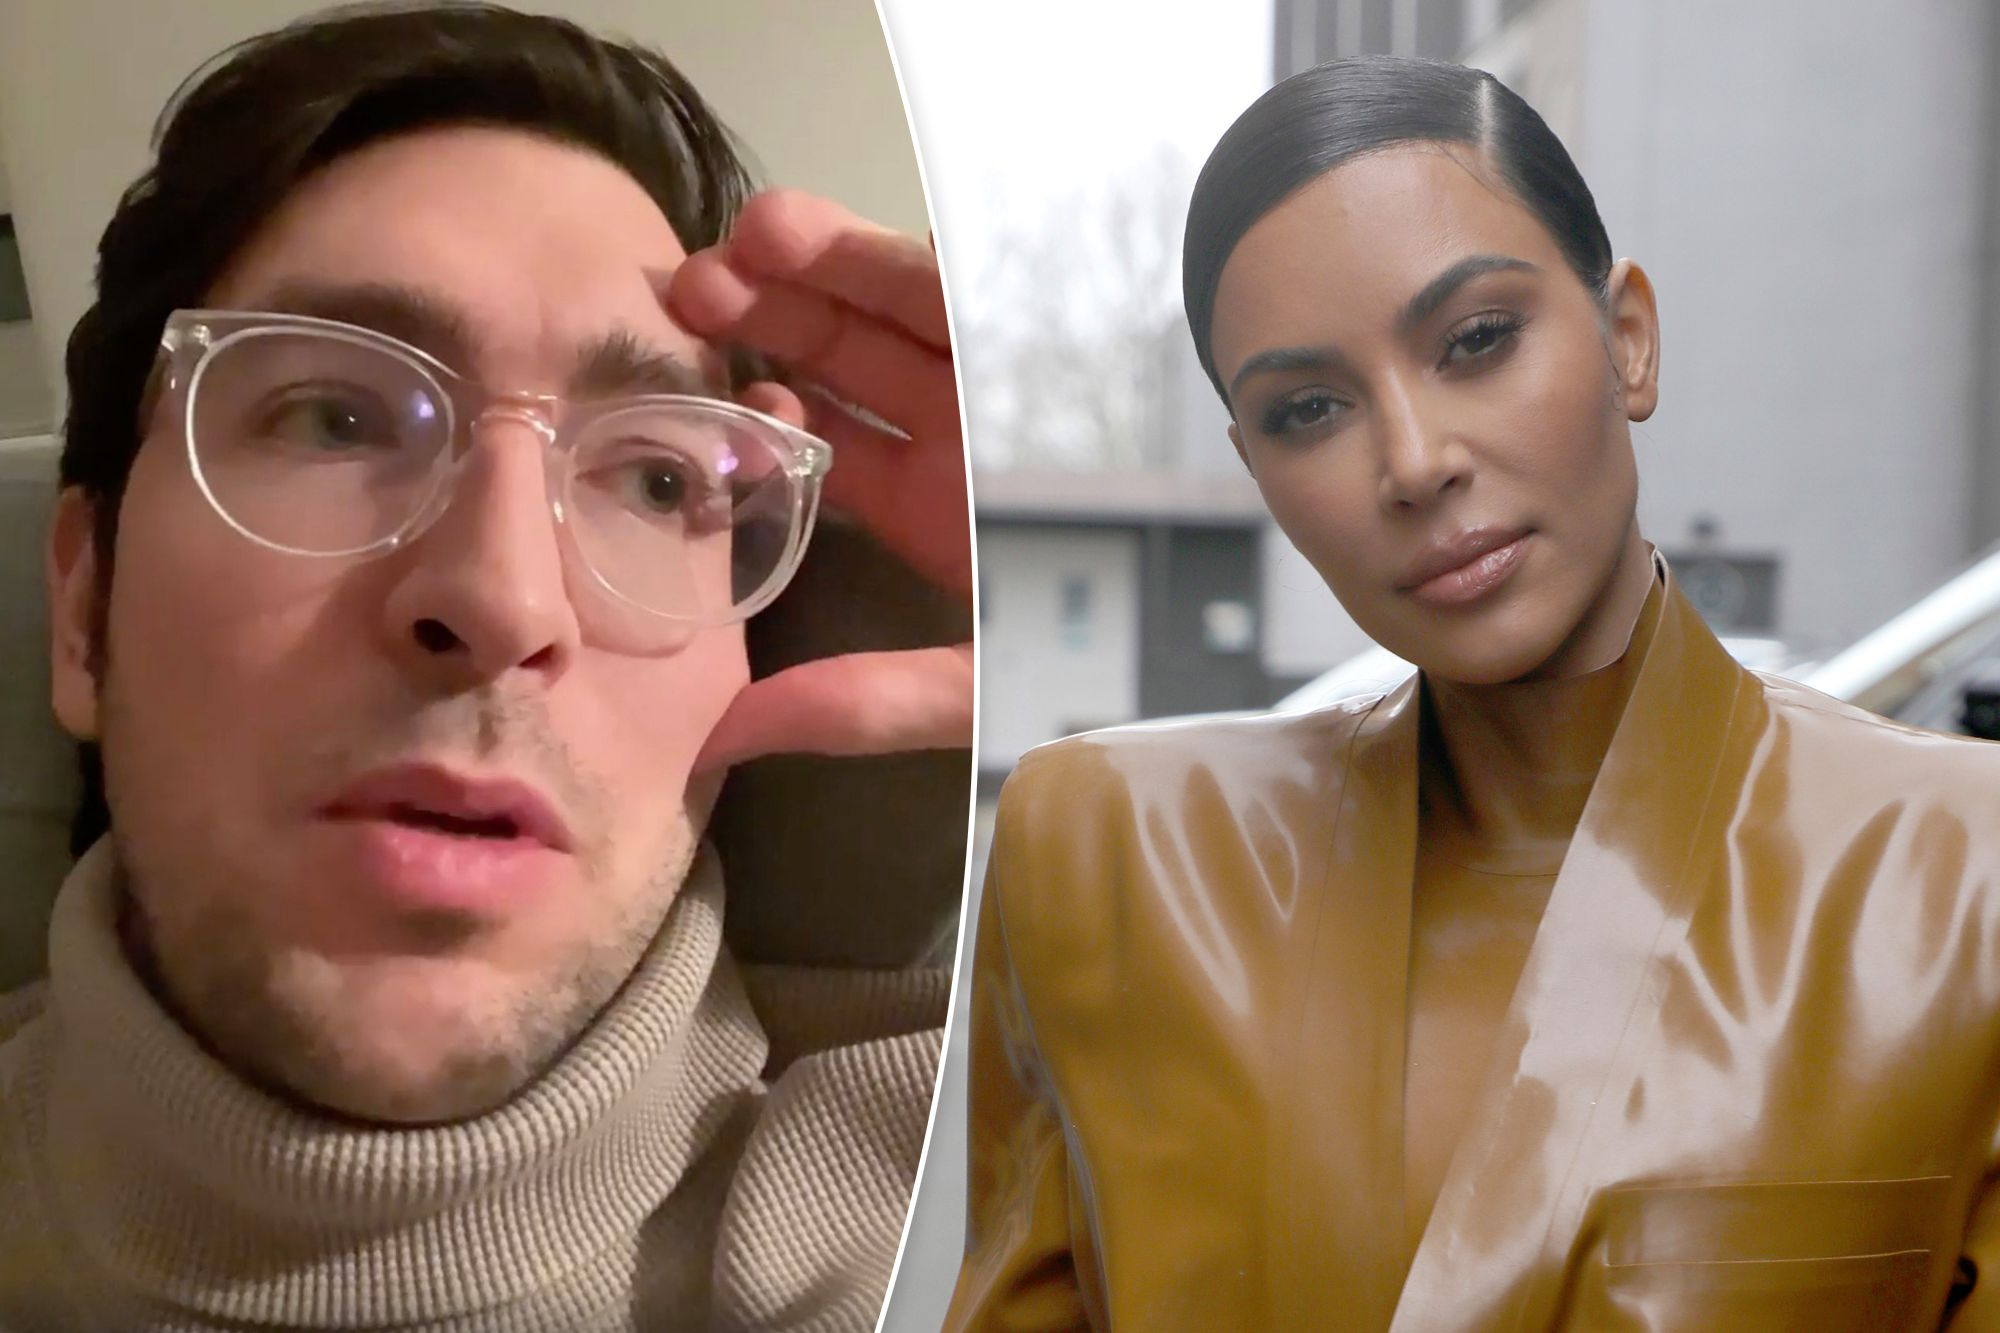 KUWTK: Kim Kardashian – Nicholas Braun Shoots His Shot With A Hilarious Video After She Files For Divorce From Kanye West!